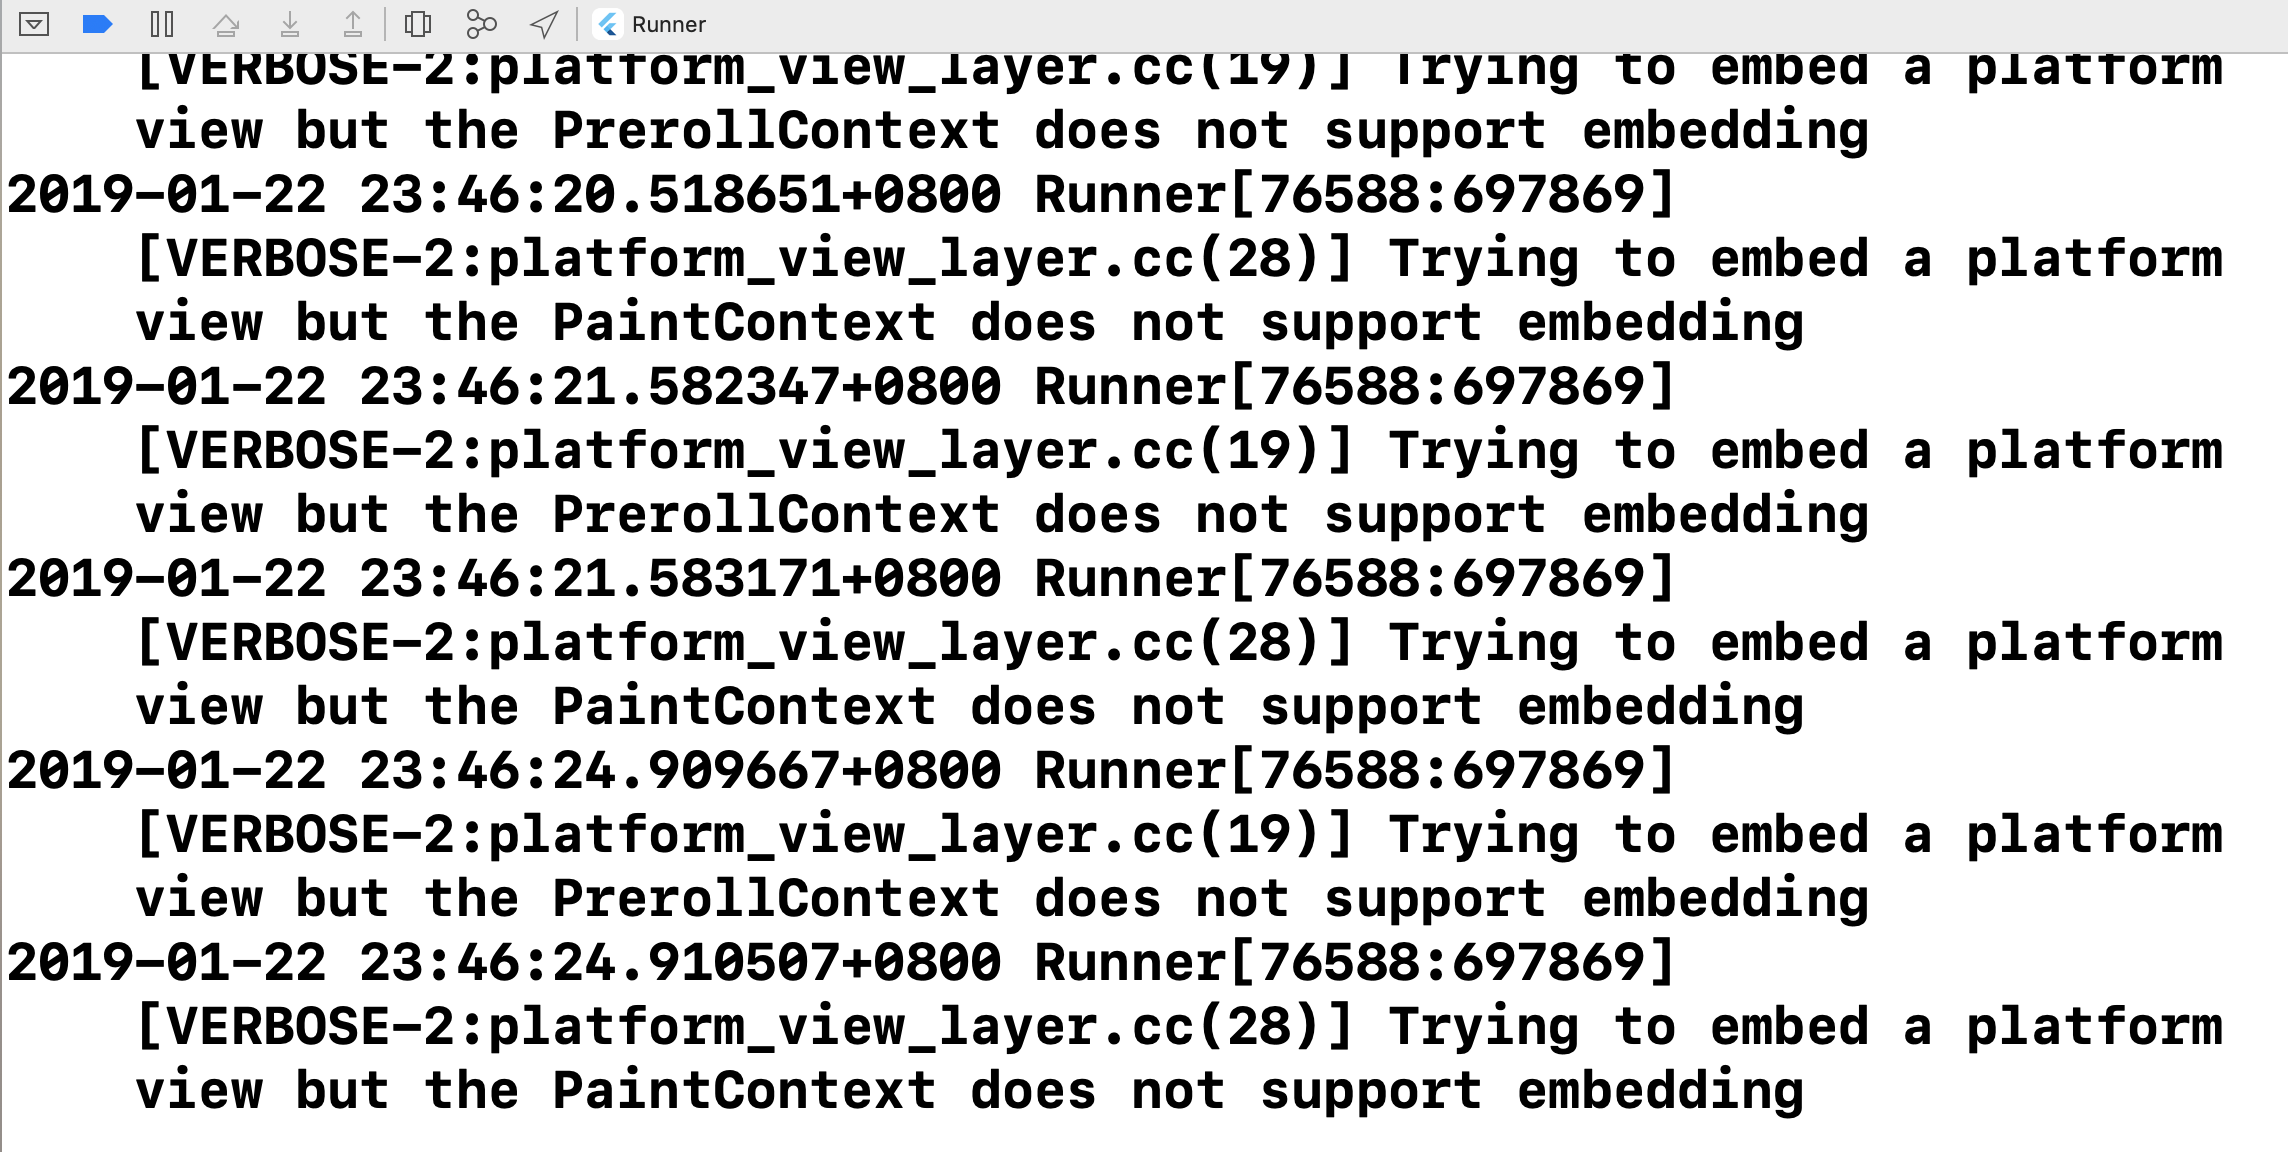 VERBOSE-2:platform_view_layer cc(28)] Trying to embed a